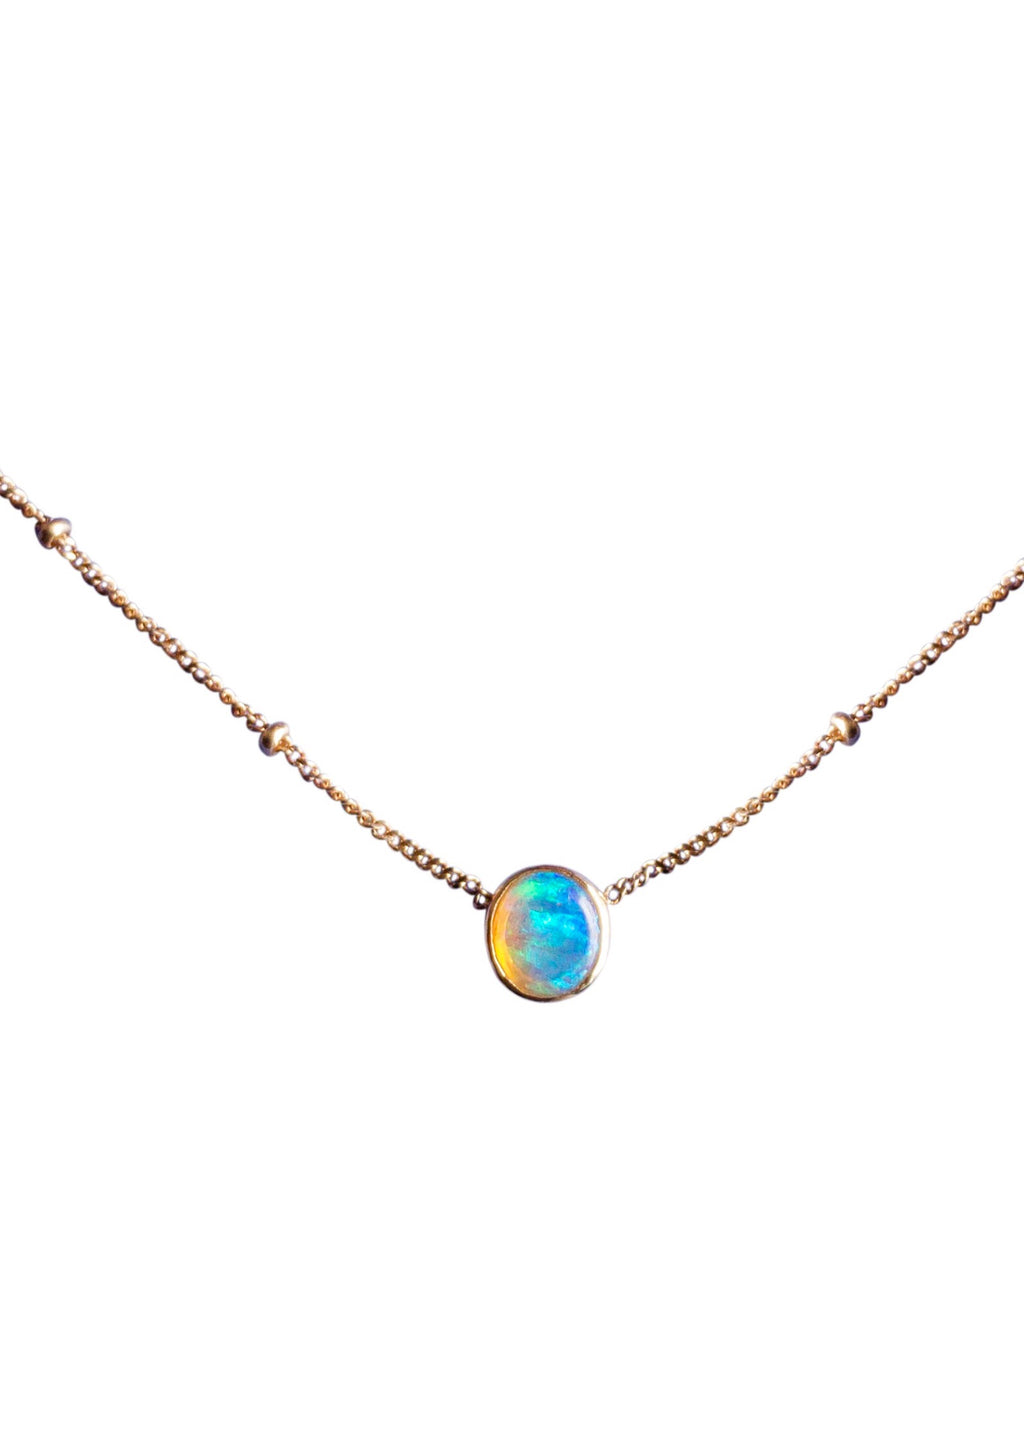 Bright Australian Opal Solitaire Necklace